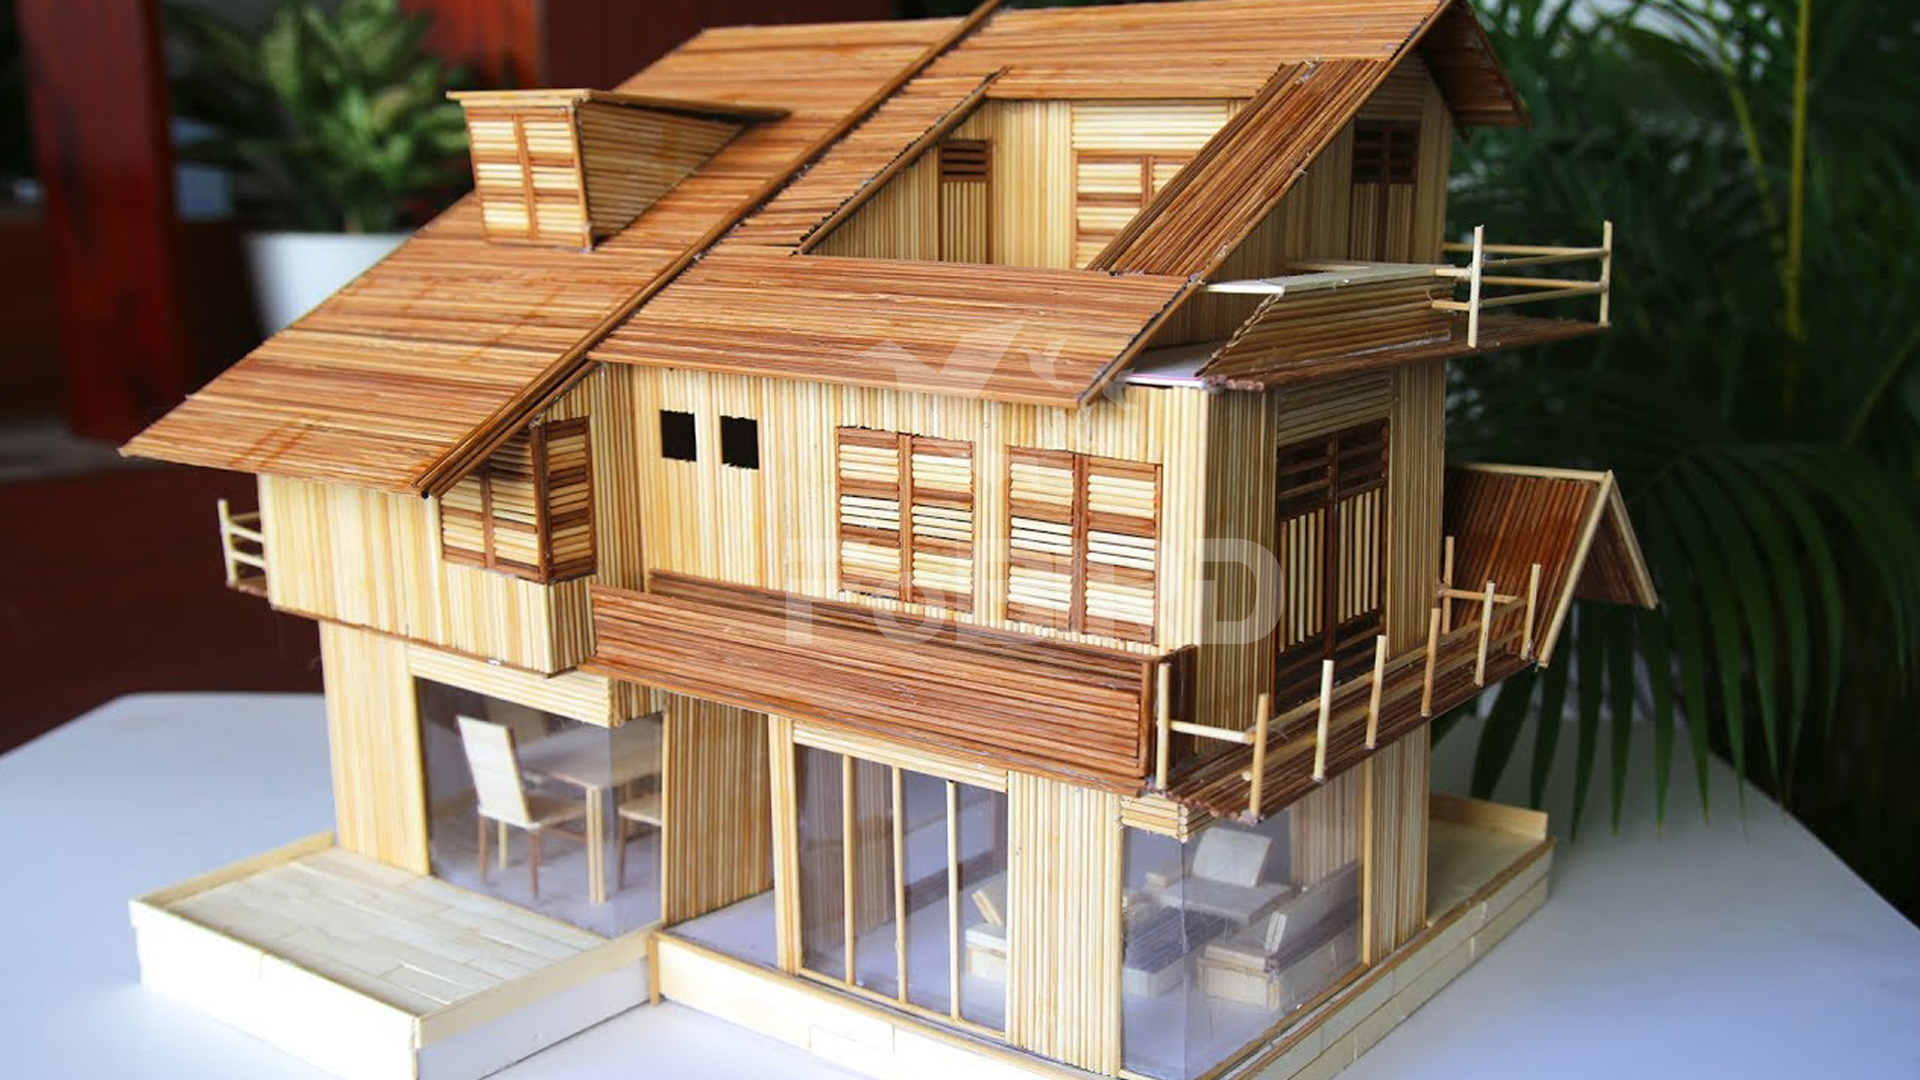 Stick house with Brow-White bamboo sticks